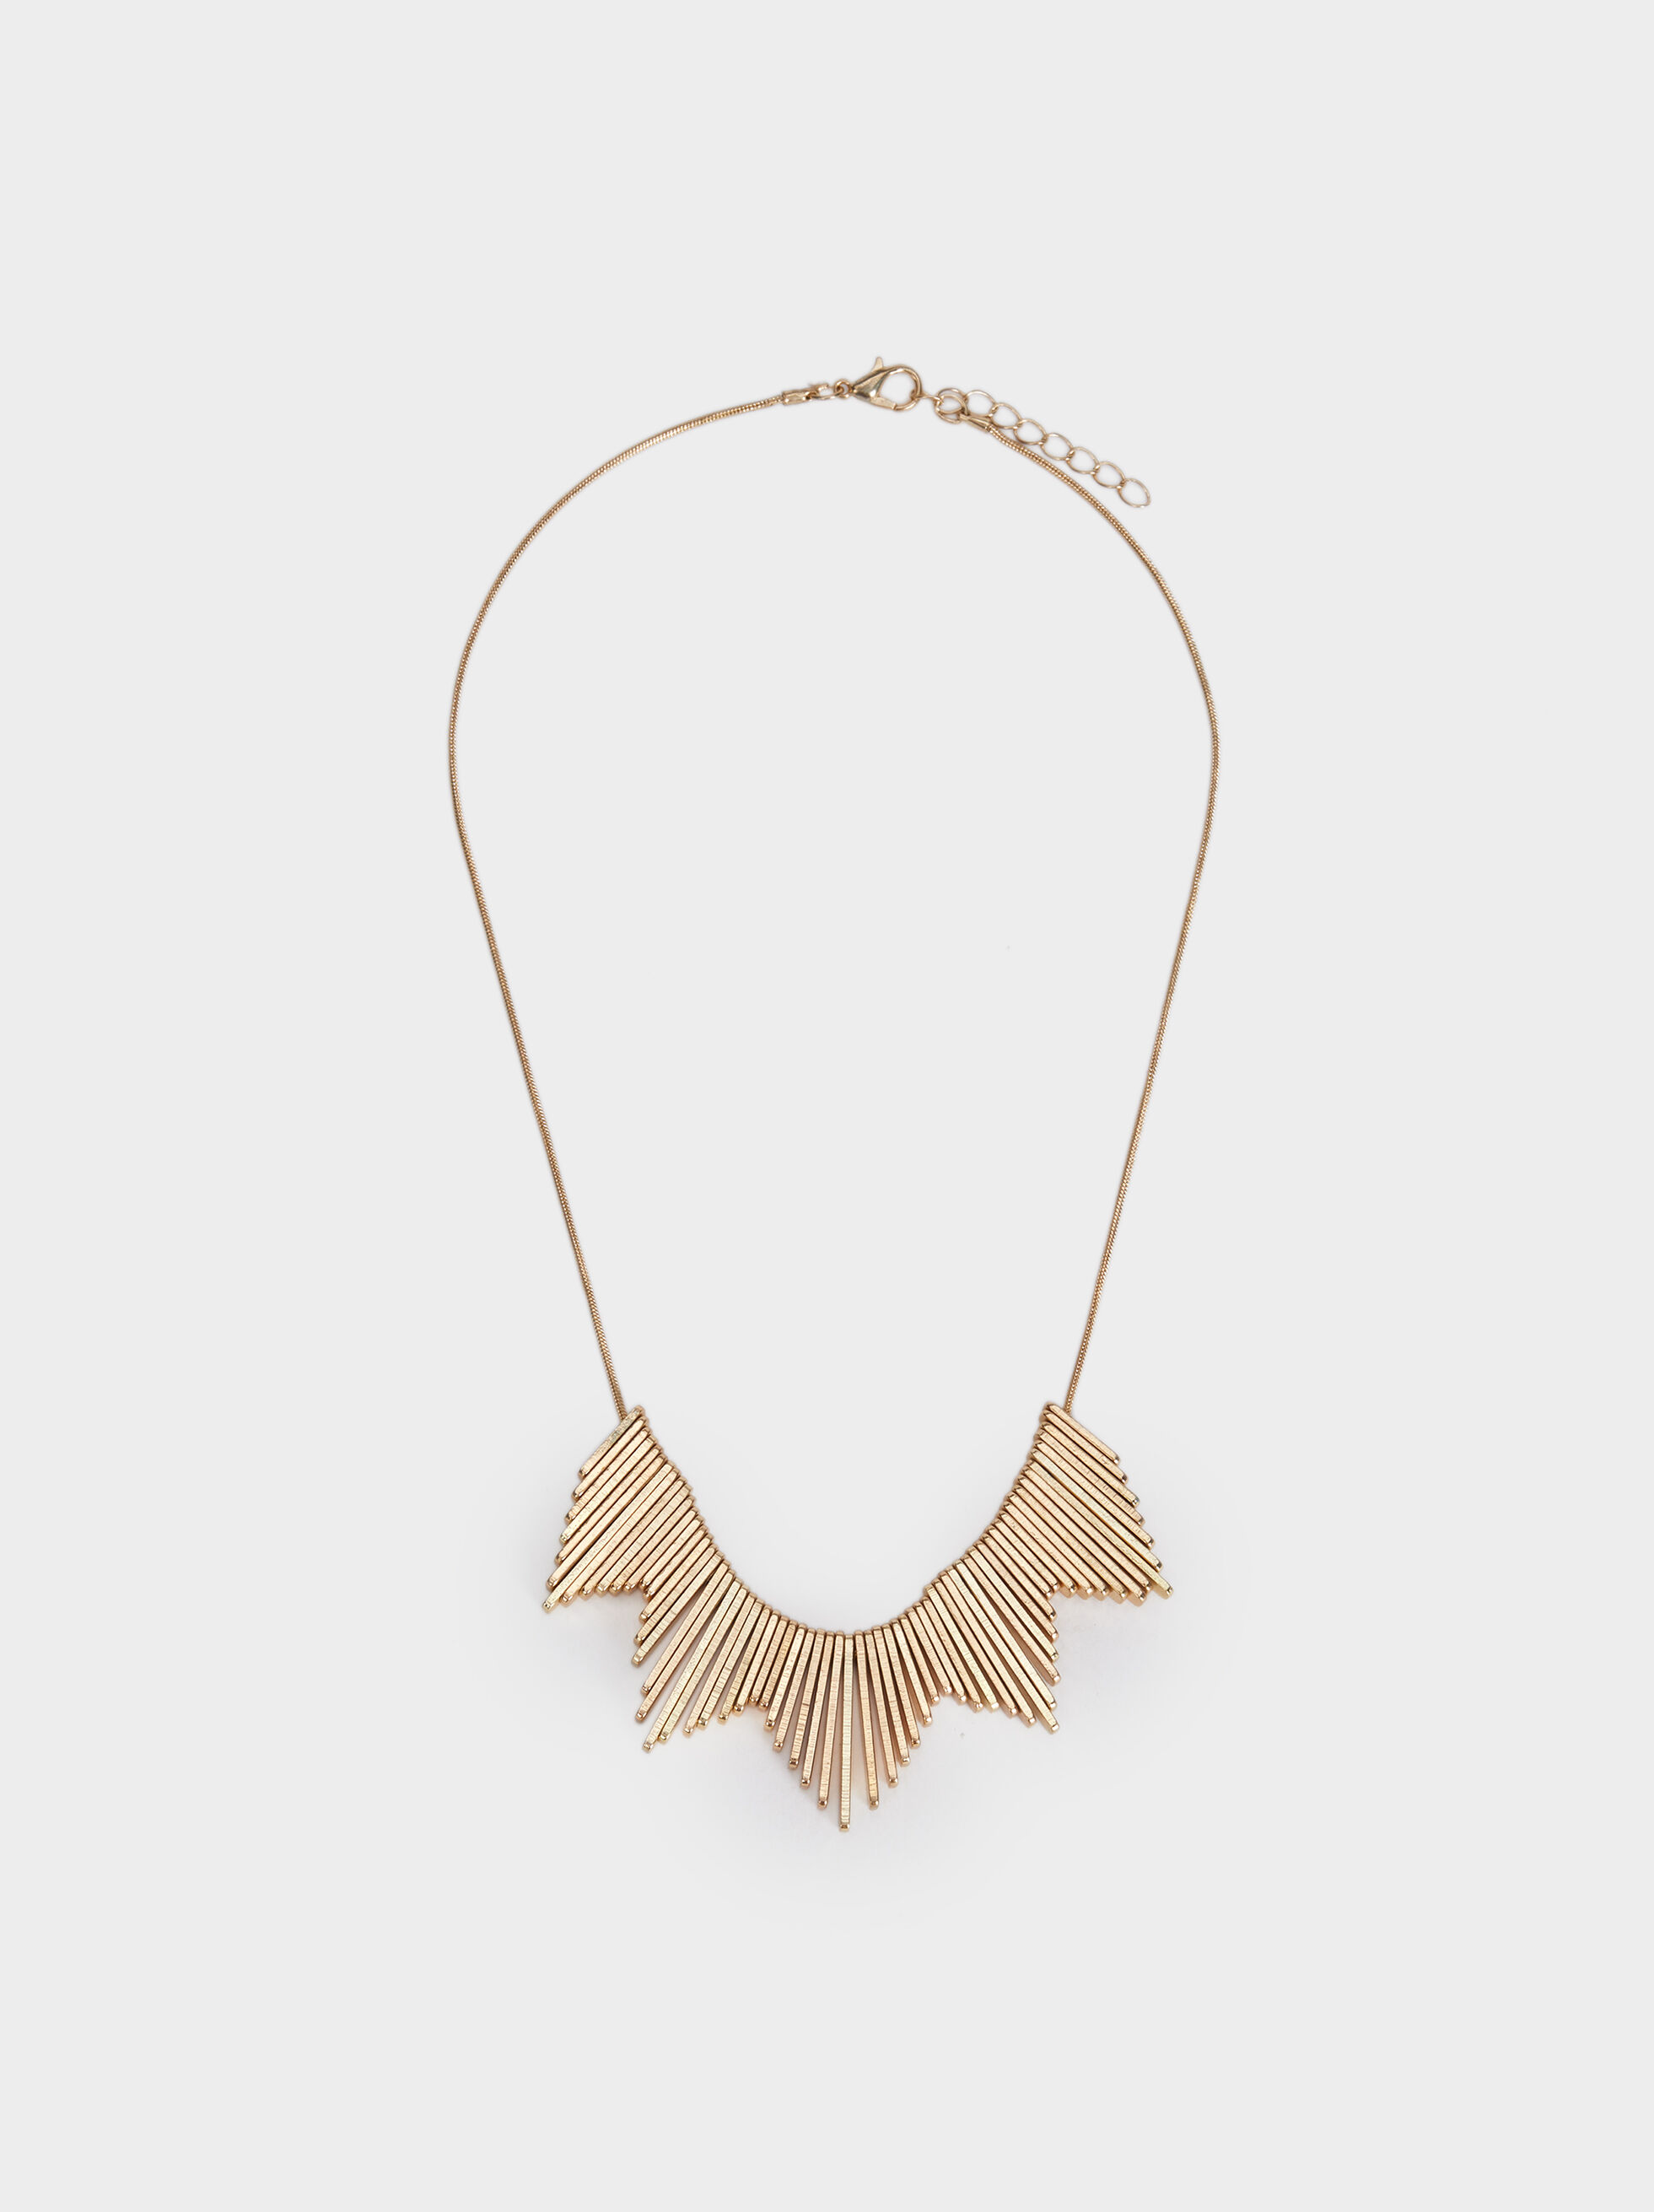 Short Necklace, Golden, hi-res